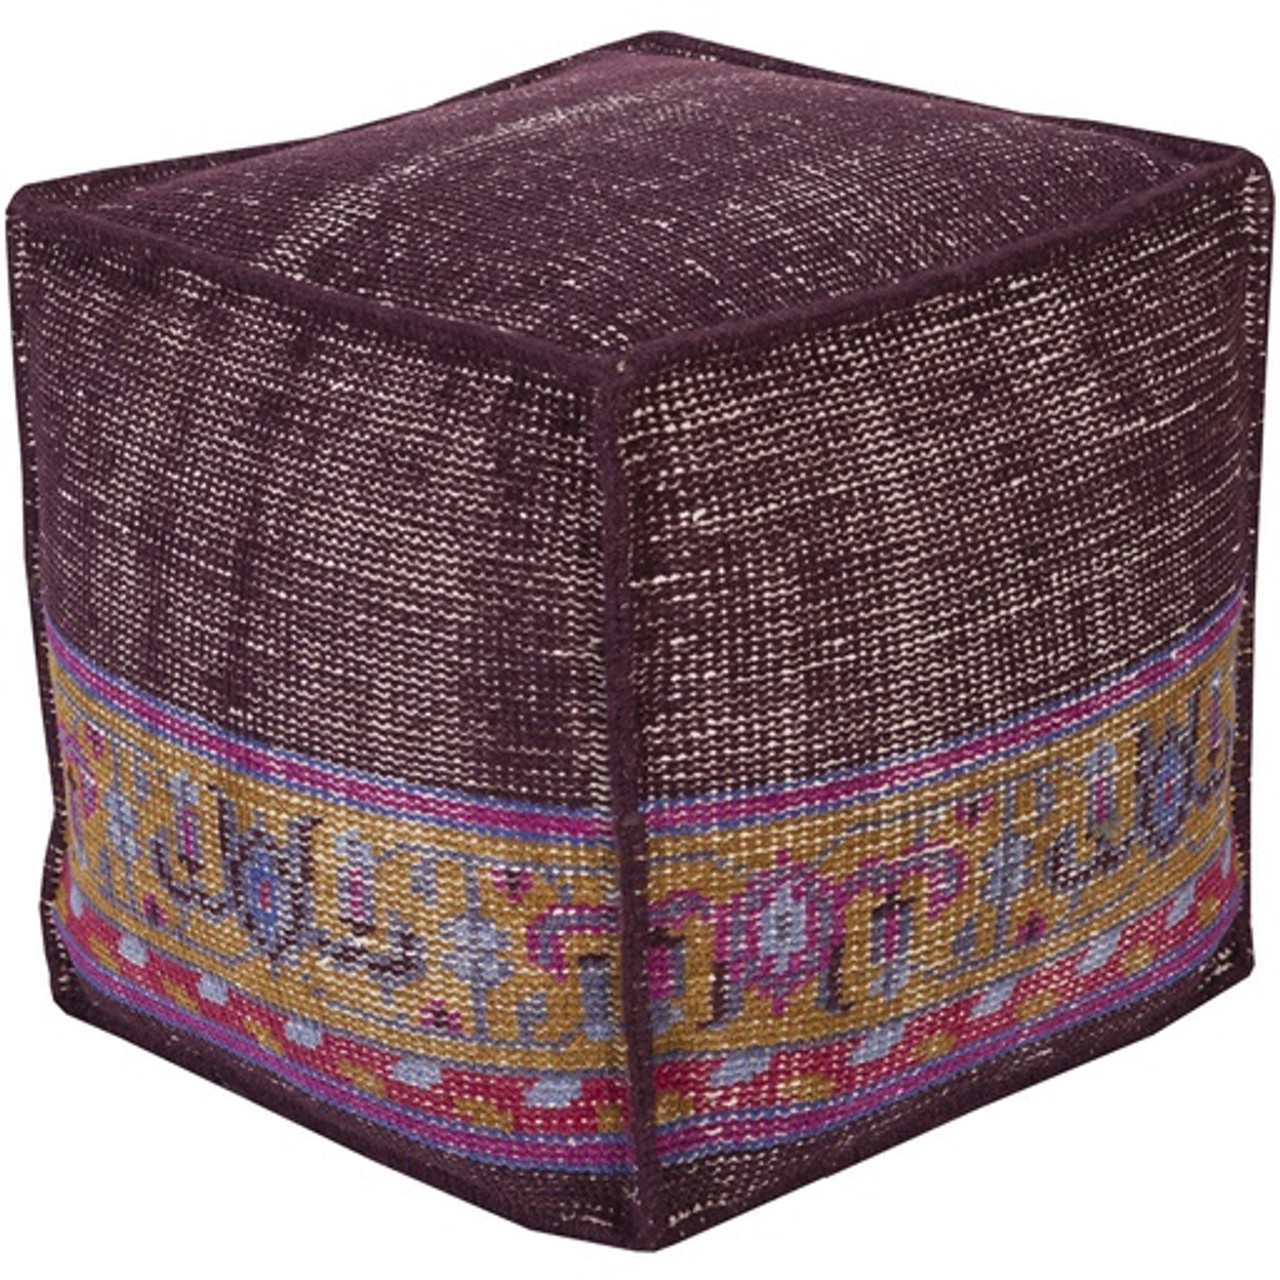 Awesome 18 Plum Purple Cherry Red And Gold Yellow Hand Knotted Wool Square Pouf Ottoman 31368872 Uwap Interior Chair Design Uwaporg